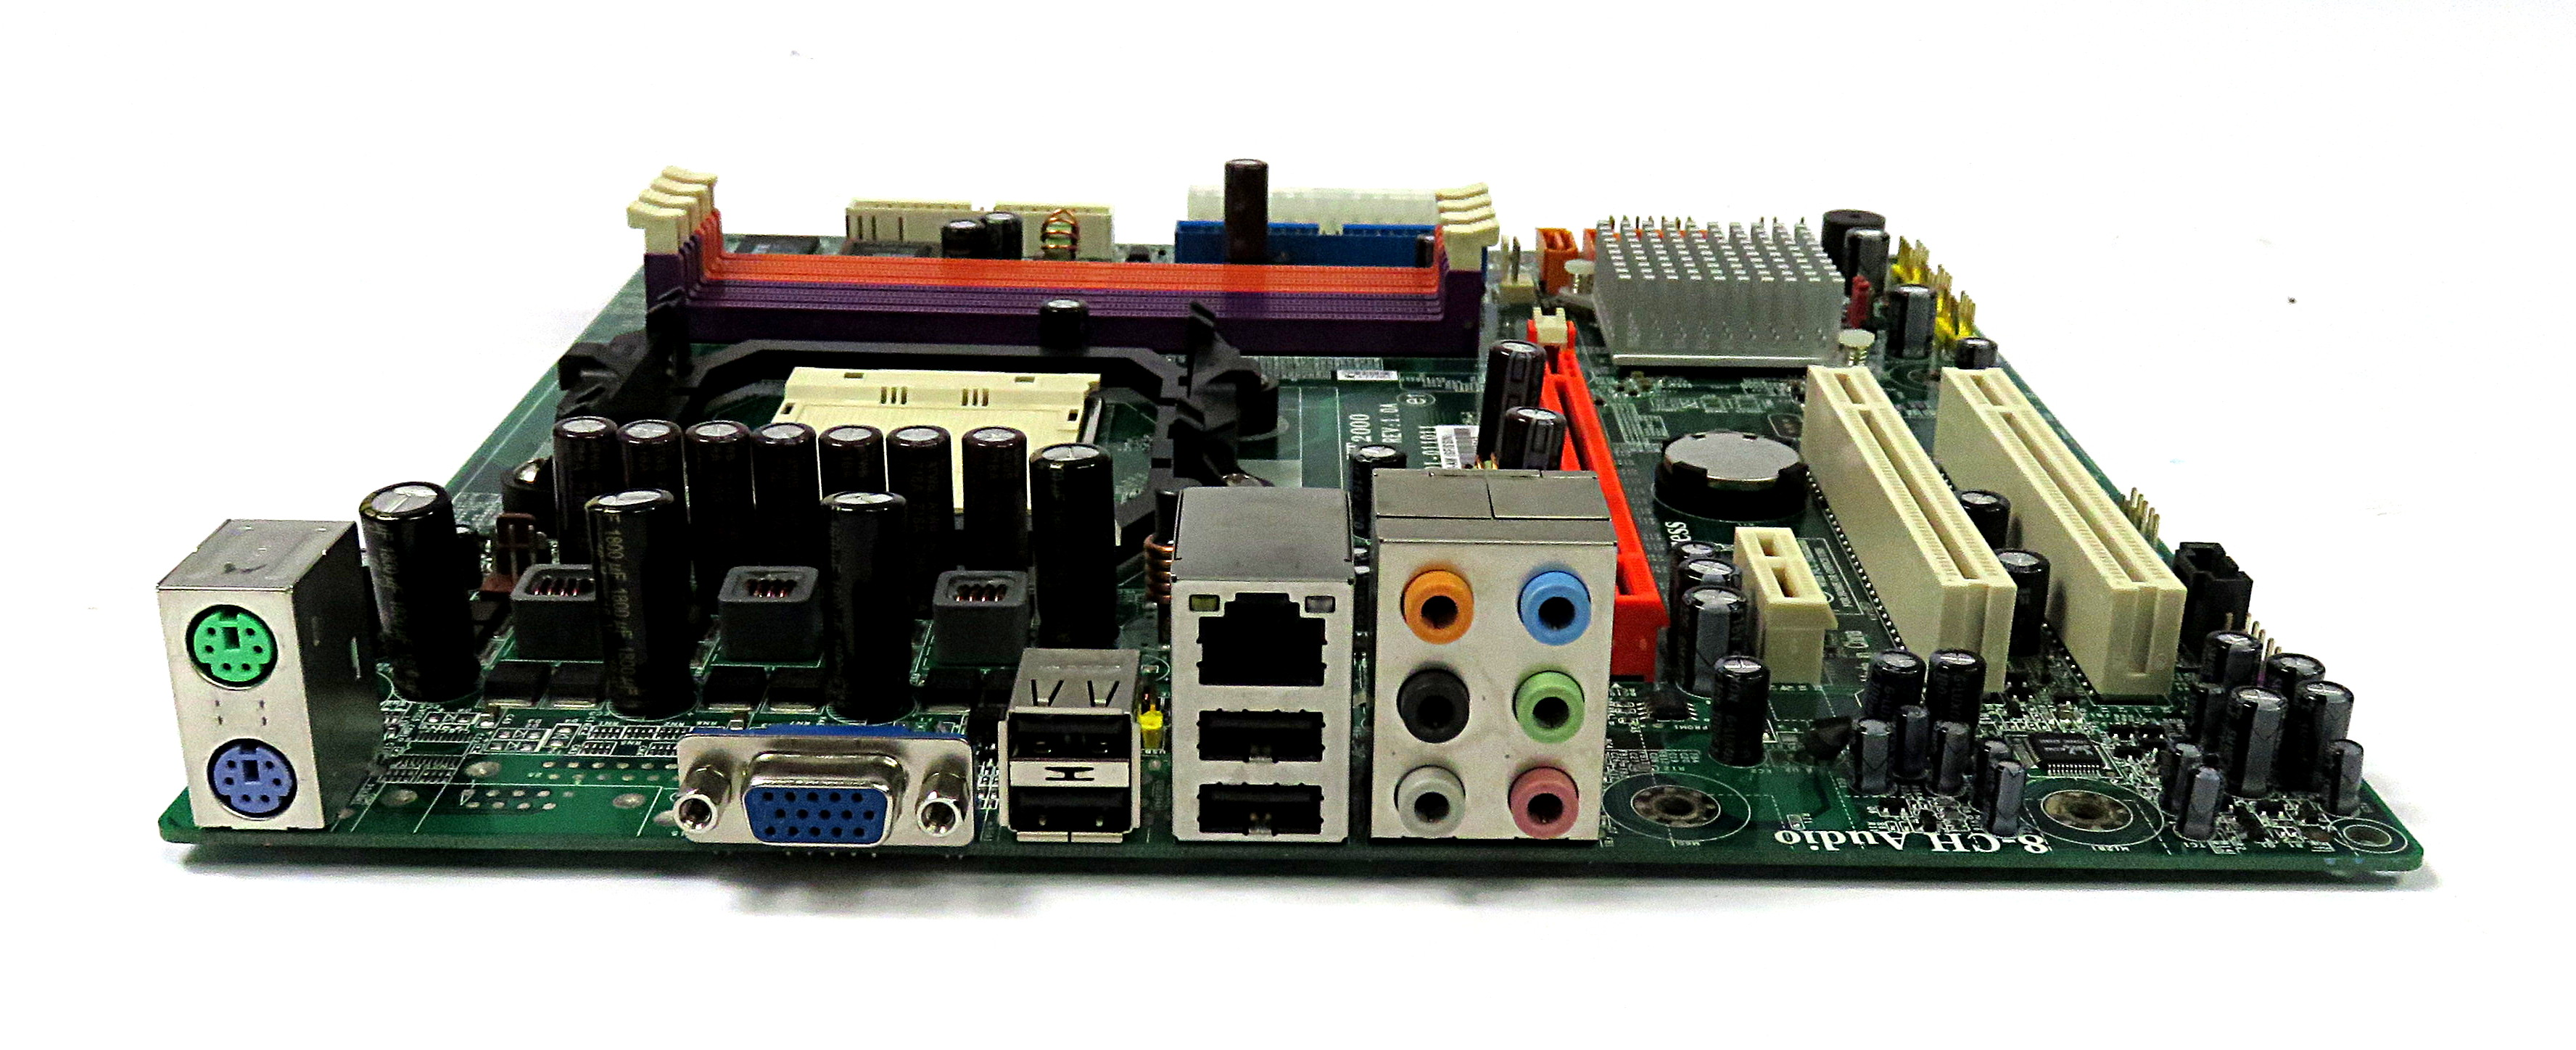 HT2000 MCP61PM-AM MOTHERBOARD WINDOWS DRIVER DOWNLOAD